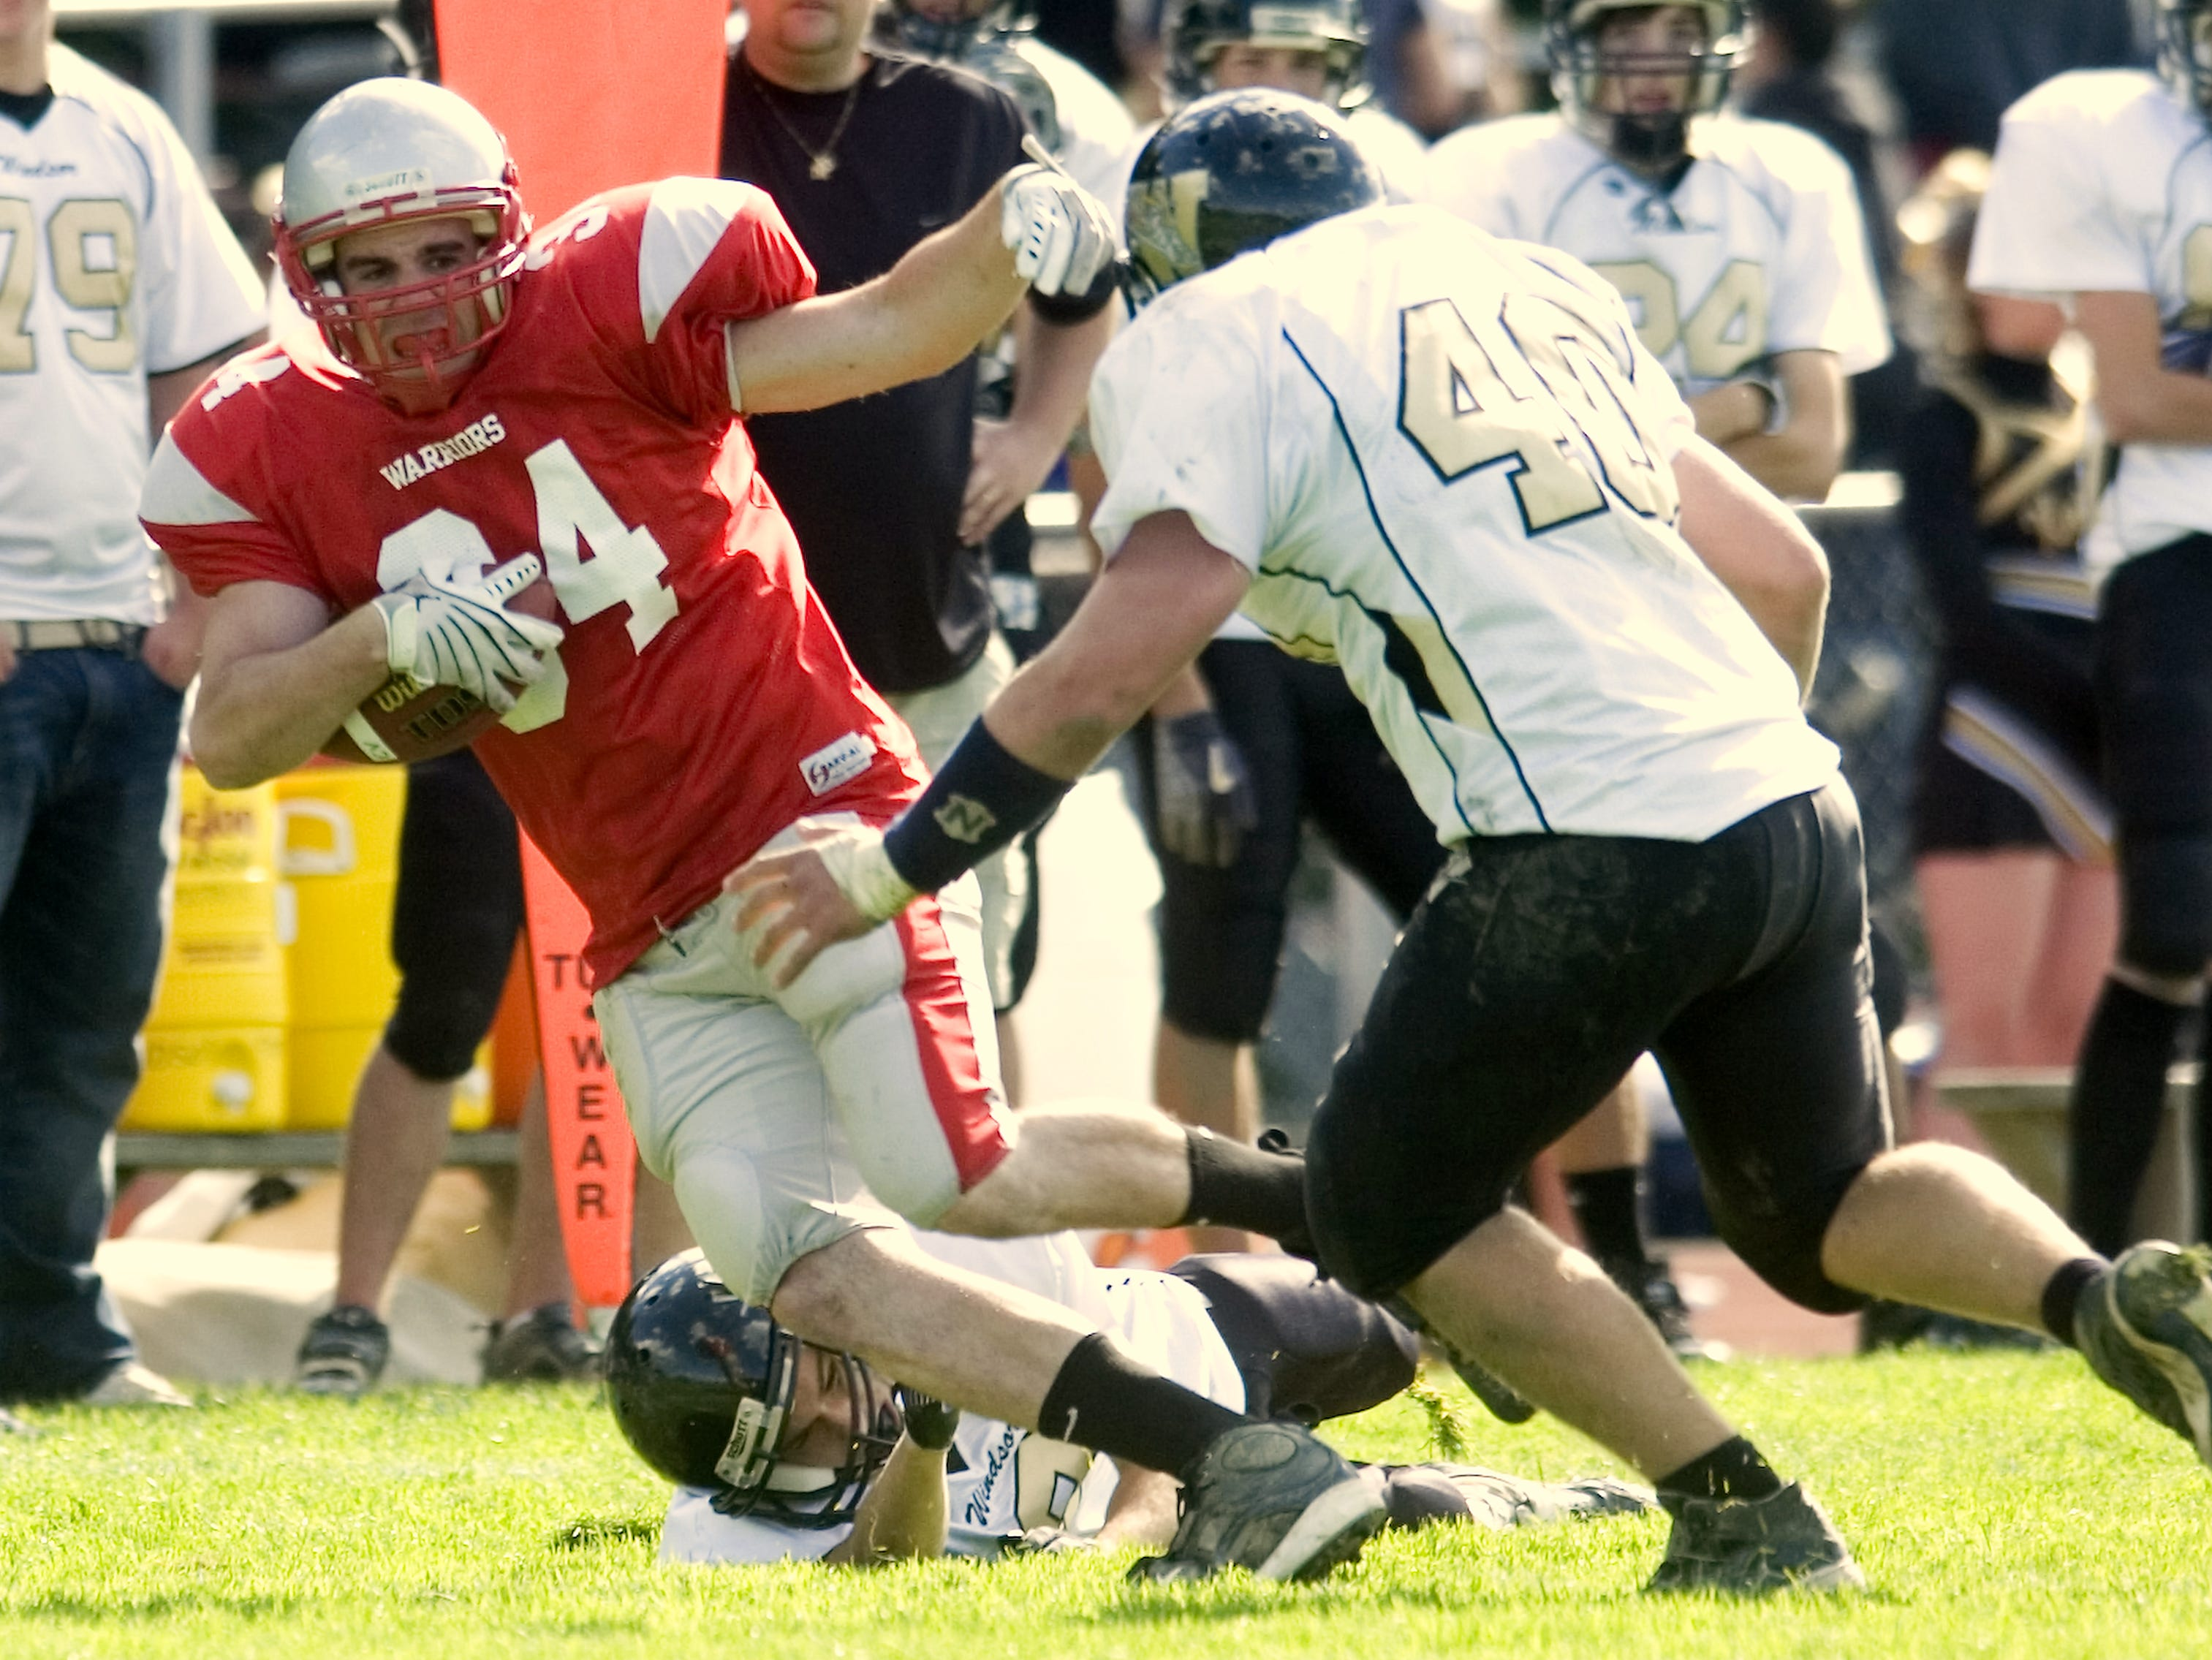 From 2009: Chenango Valley's Tom Hull, left, looks to gets past Windsor's Noah Sibley, right, after eluding Danny Schreiber, bottom, in the third quarter of Saturday's game at CV.